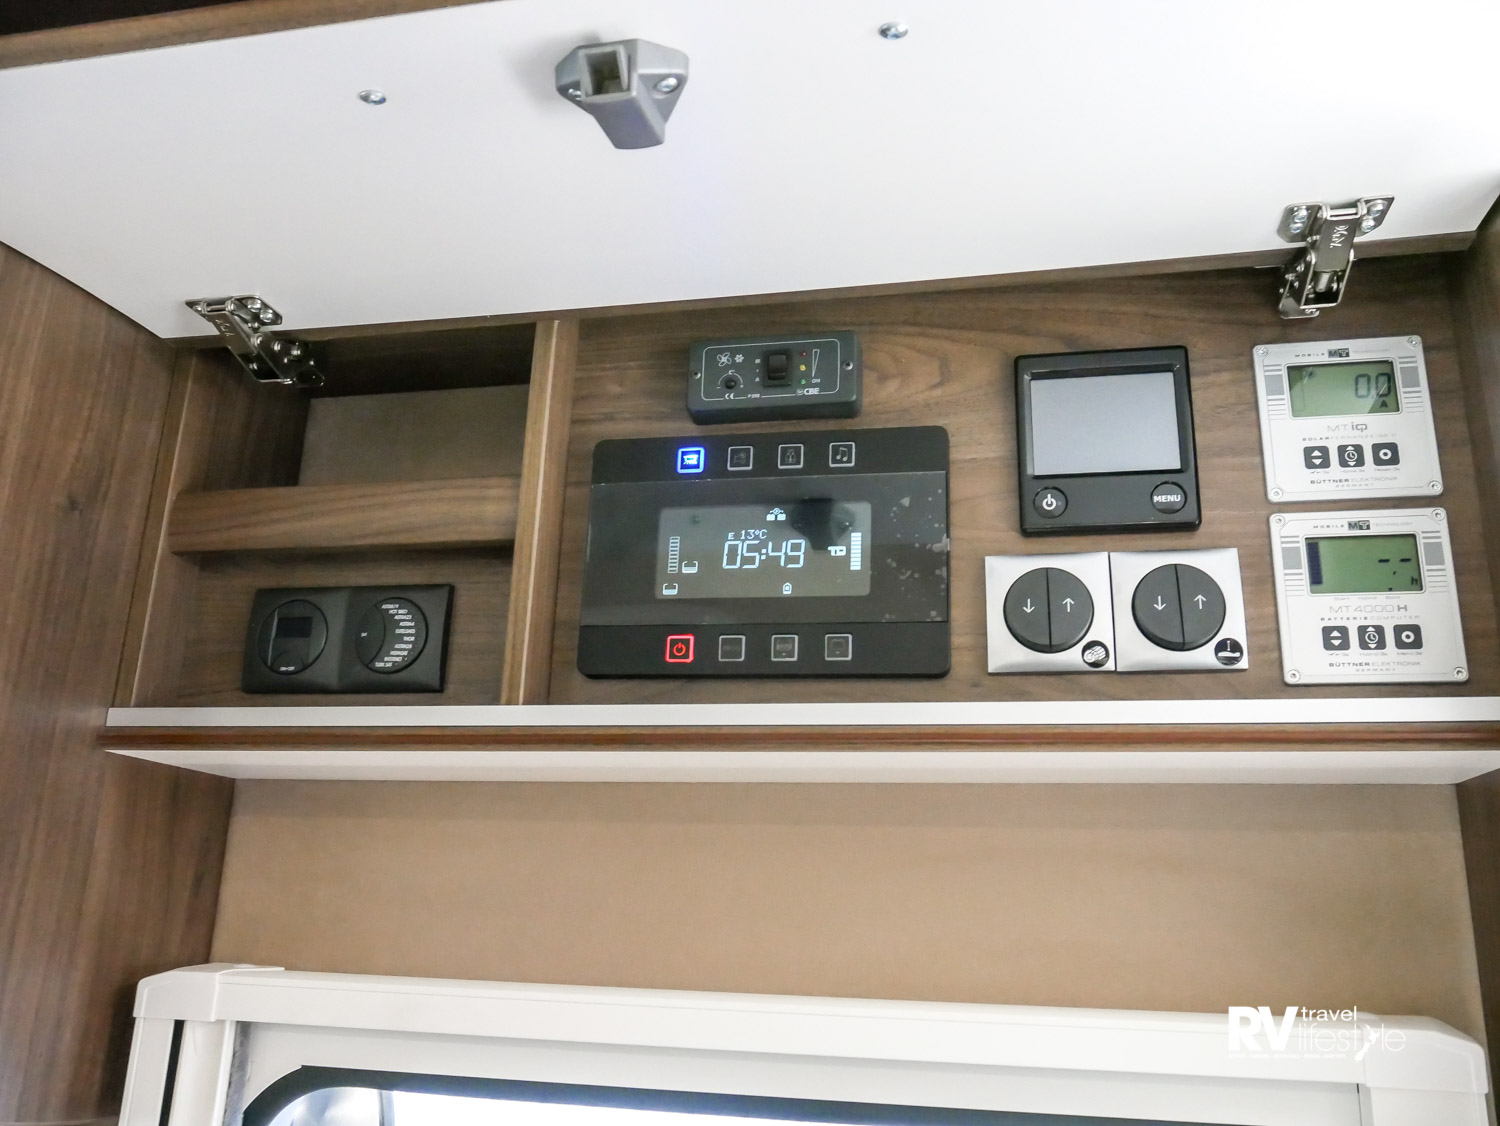 The monitors and controls in one space above the door. Easy-to-use controls for the ceiling bed and electric awning